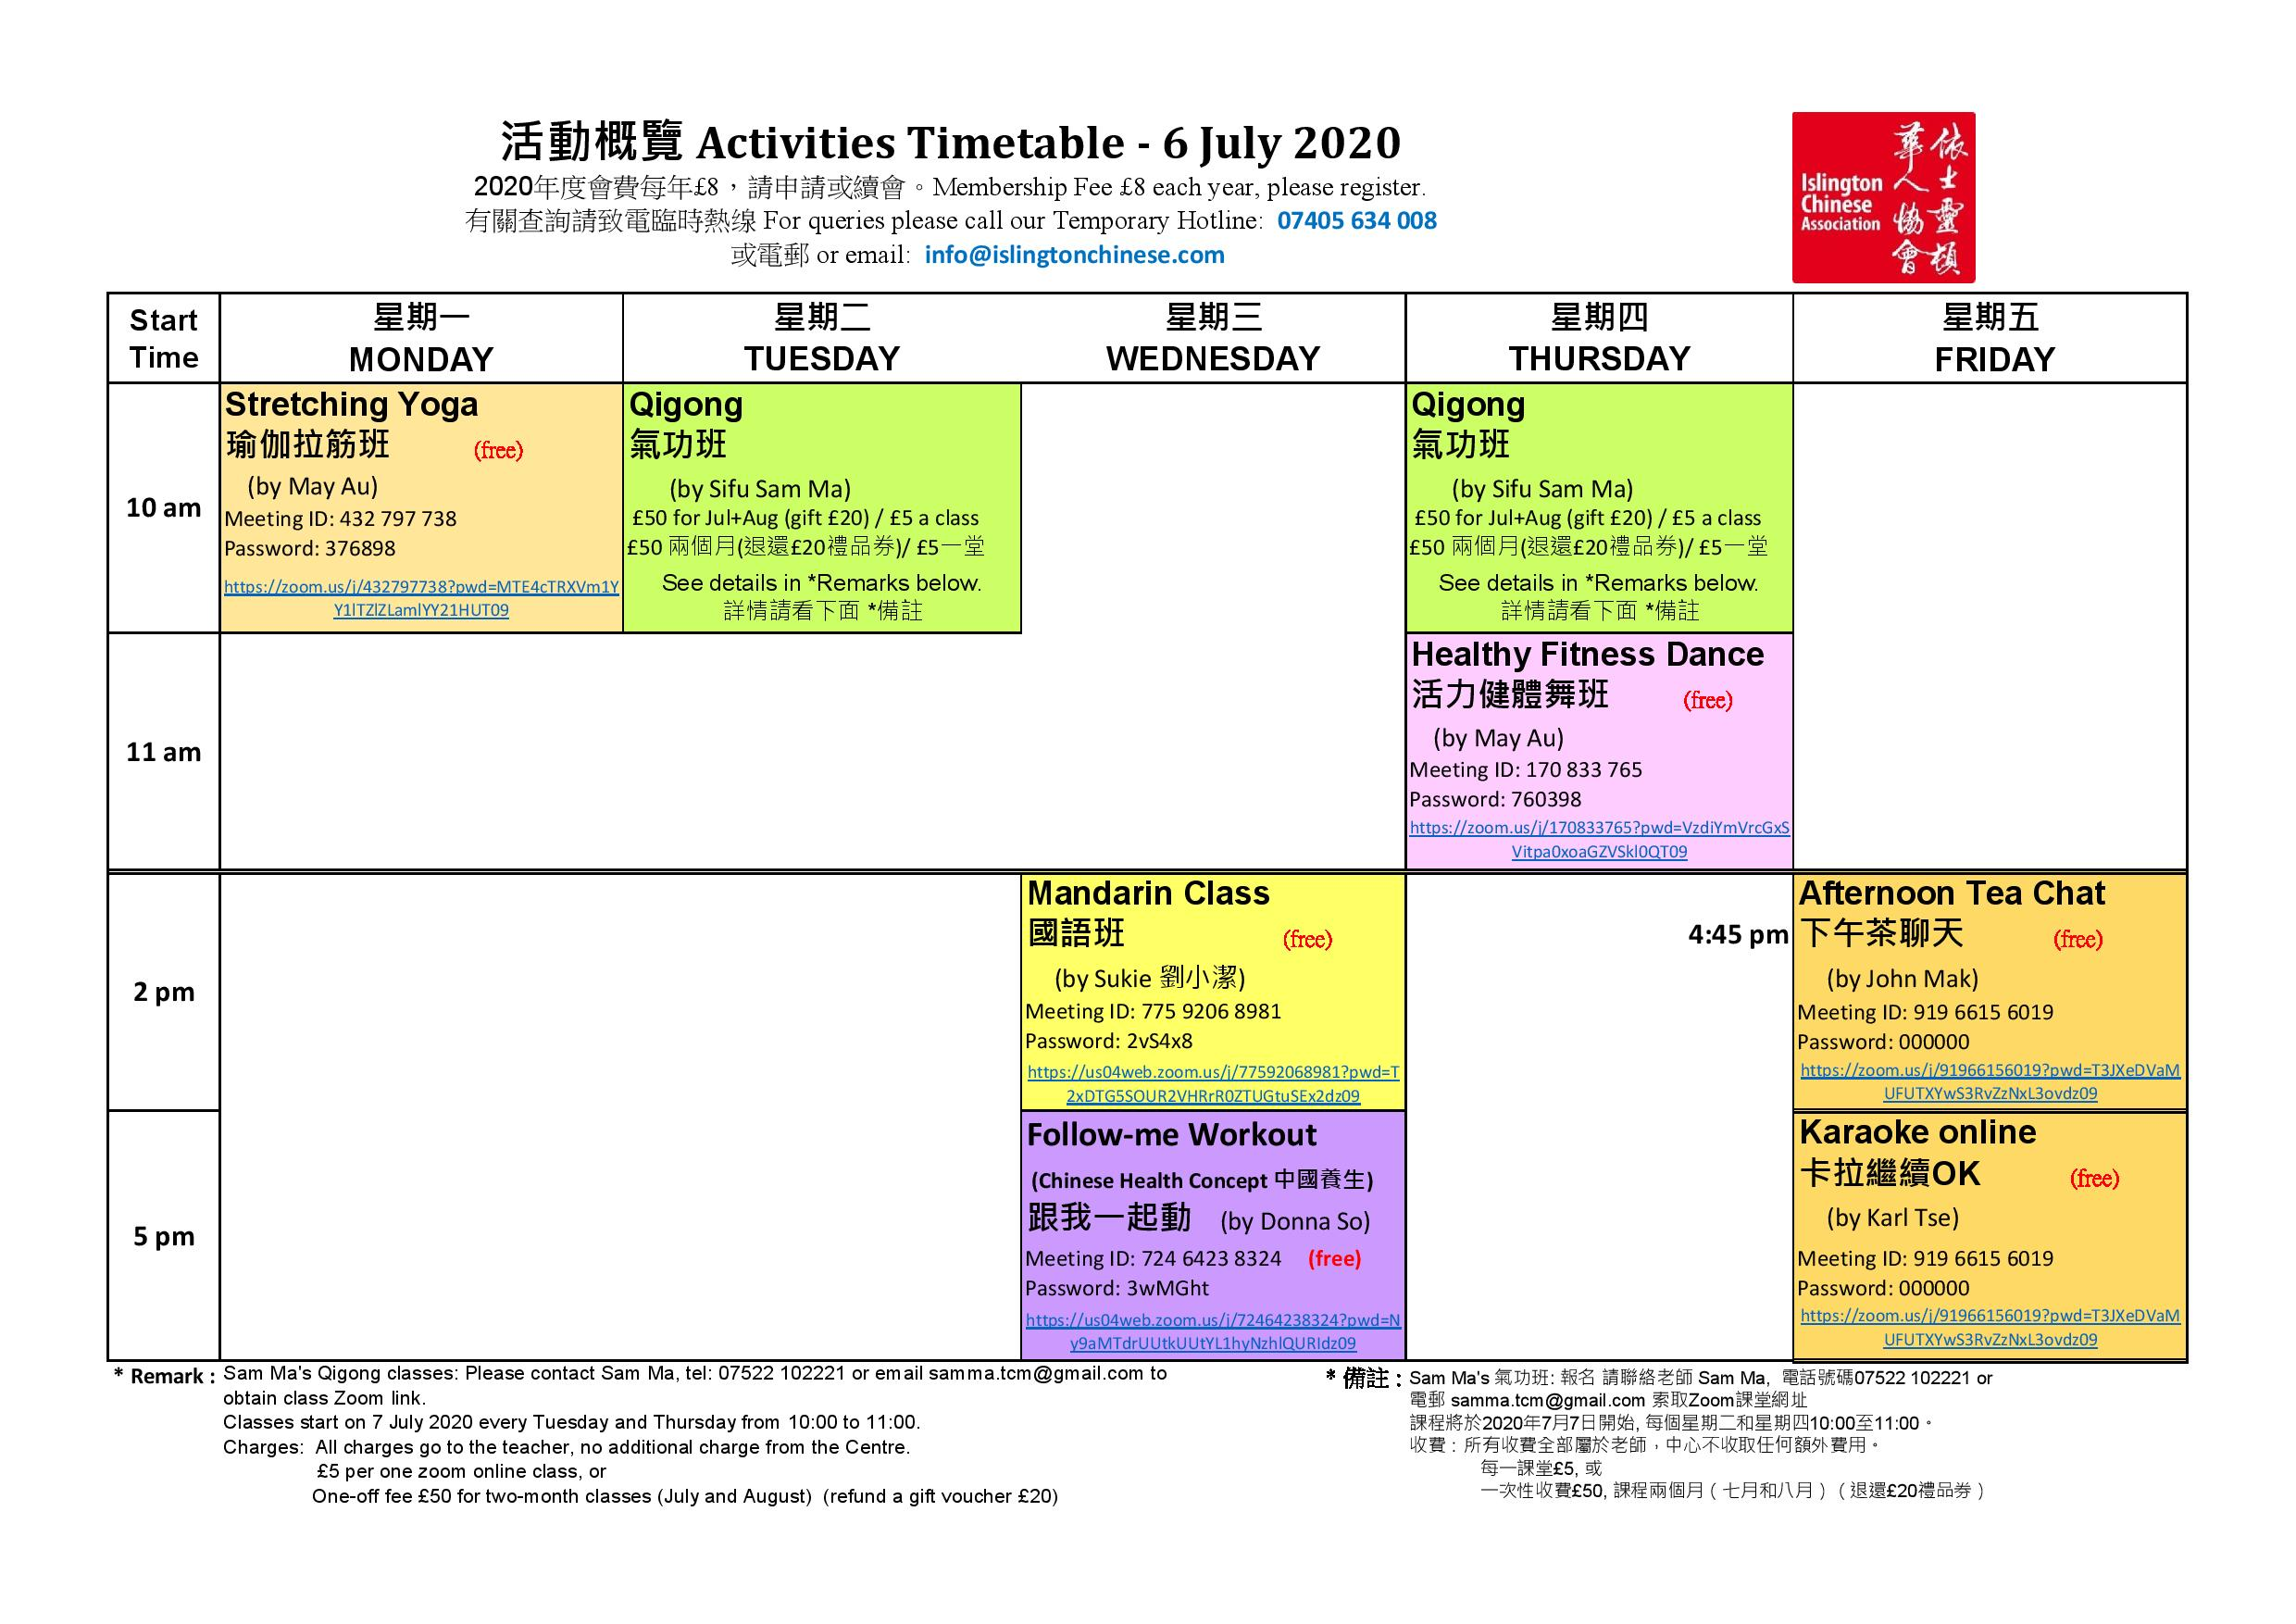 ICA Activities Timetable 2020_07_06-page-1